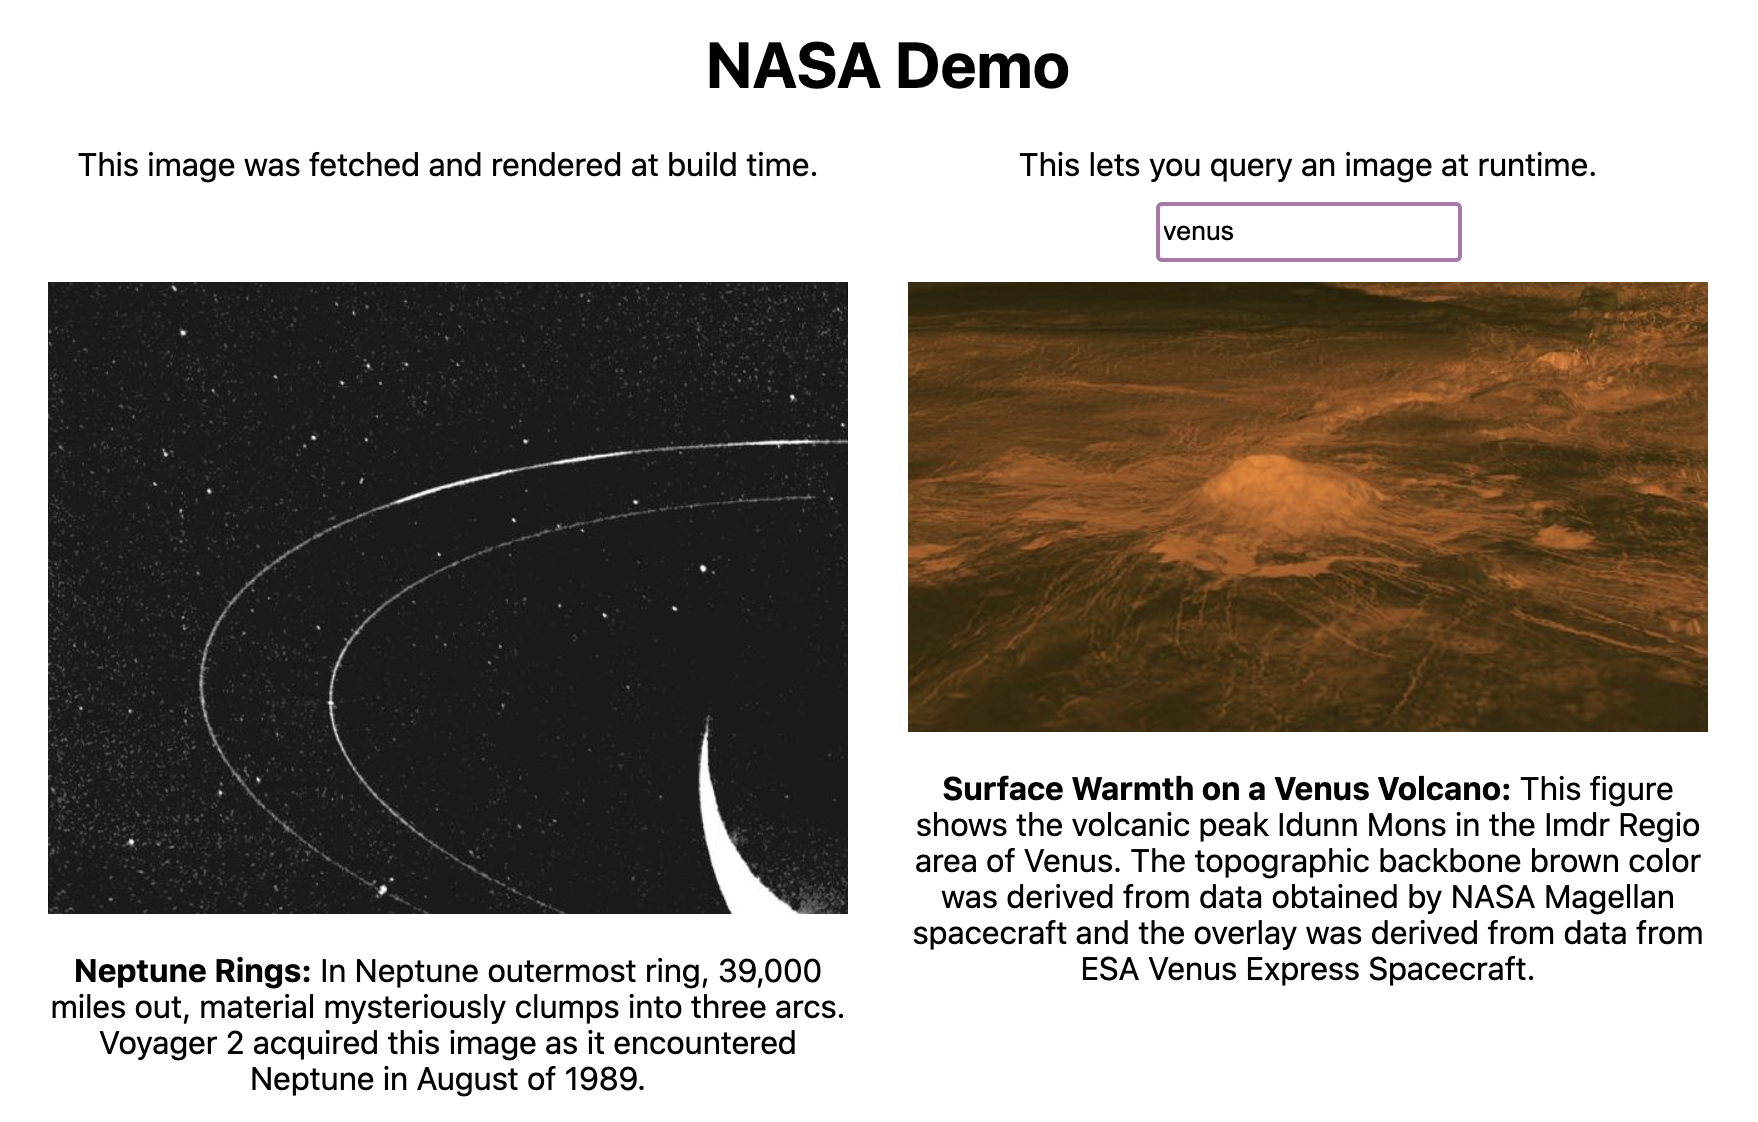 Preview demo site querying the NASA API, build time on the left, and runtime on the right